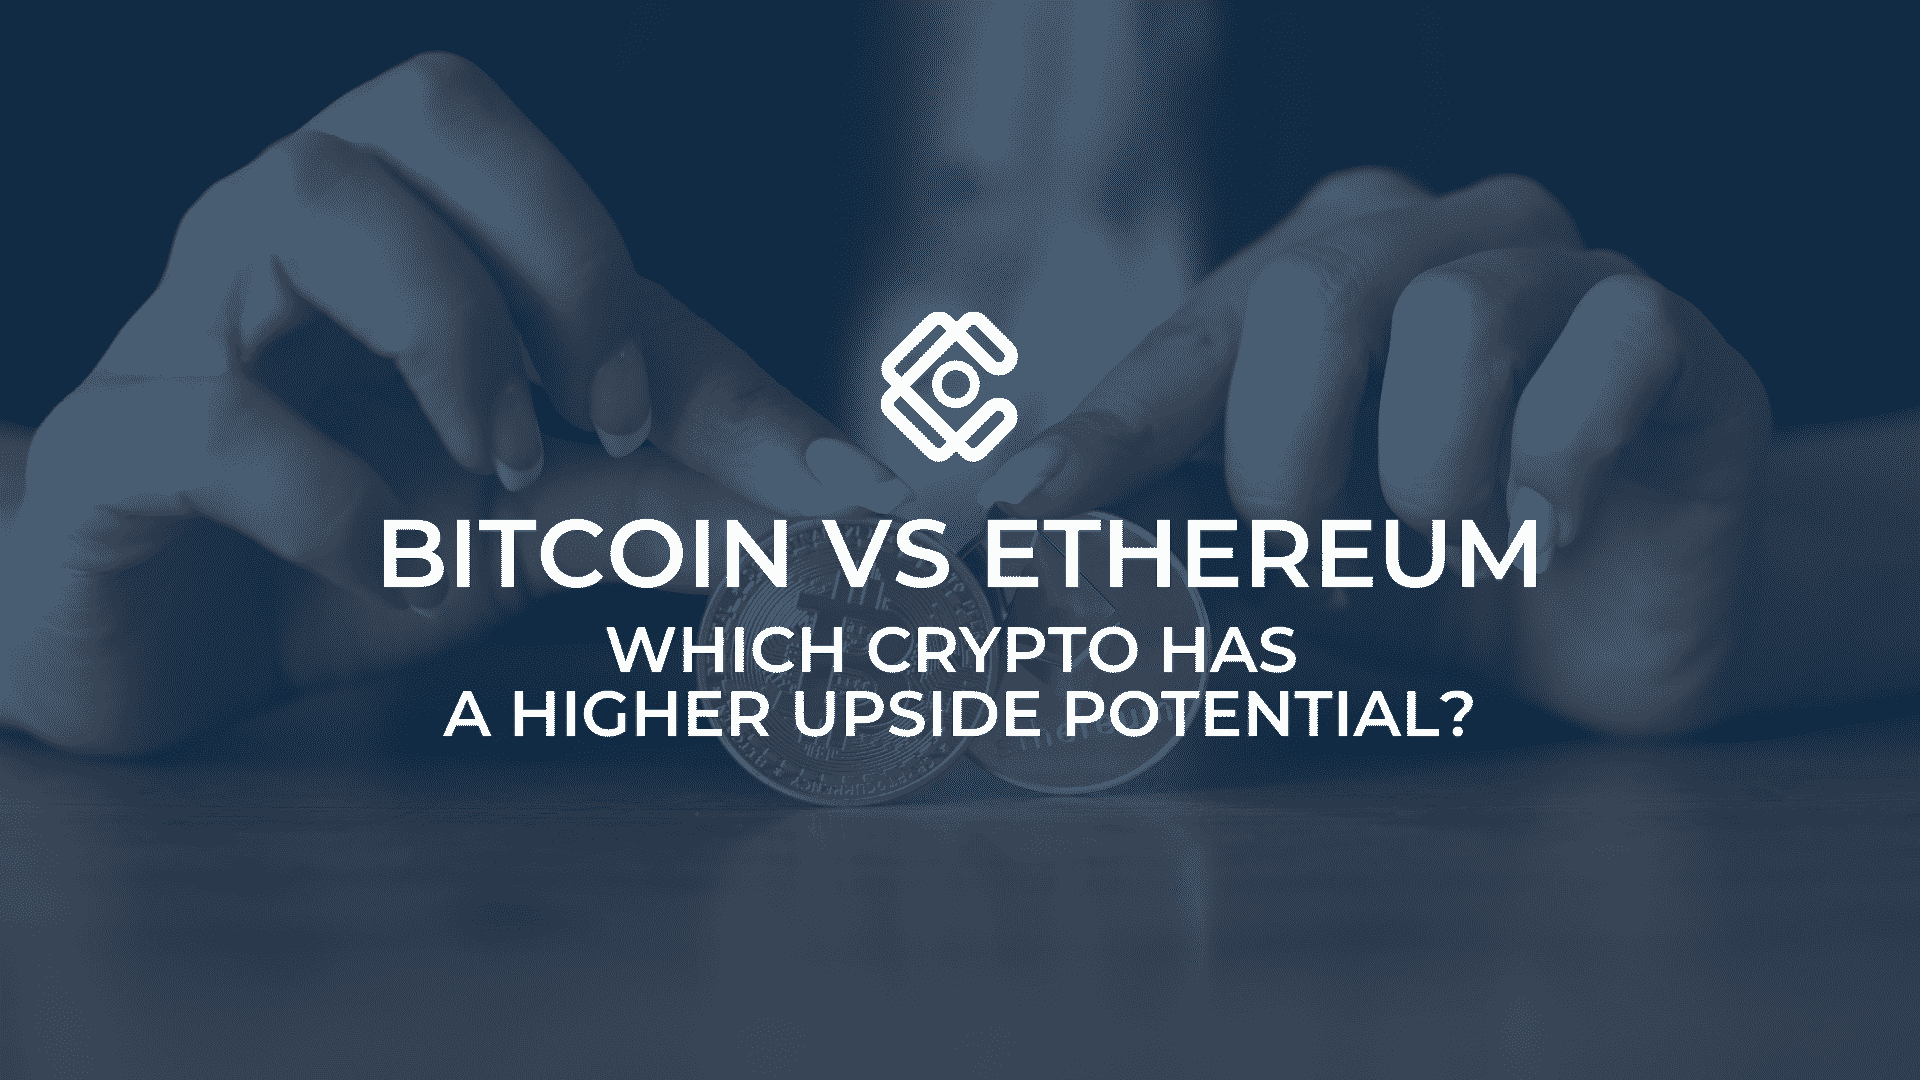 Bitcoin vs Ethereum: which crypto has a higher upside?